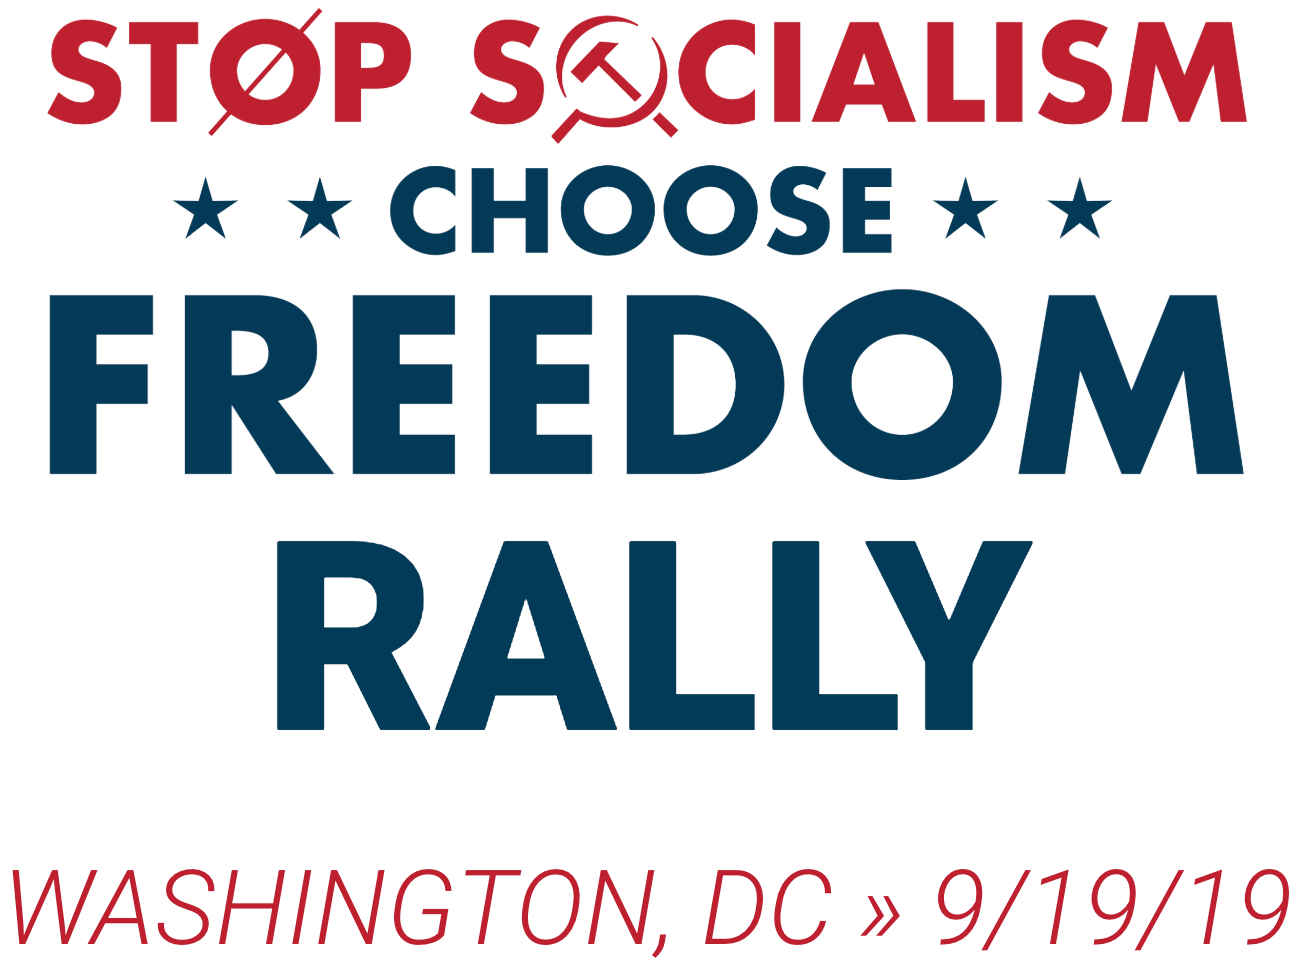 STOP SOCIALISM, CHOOSE FREEDOM rally